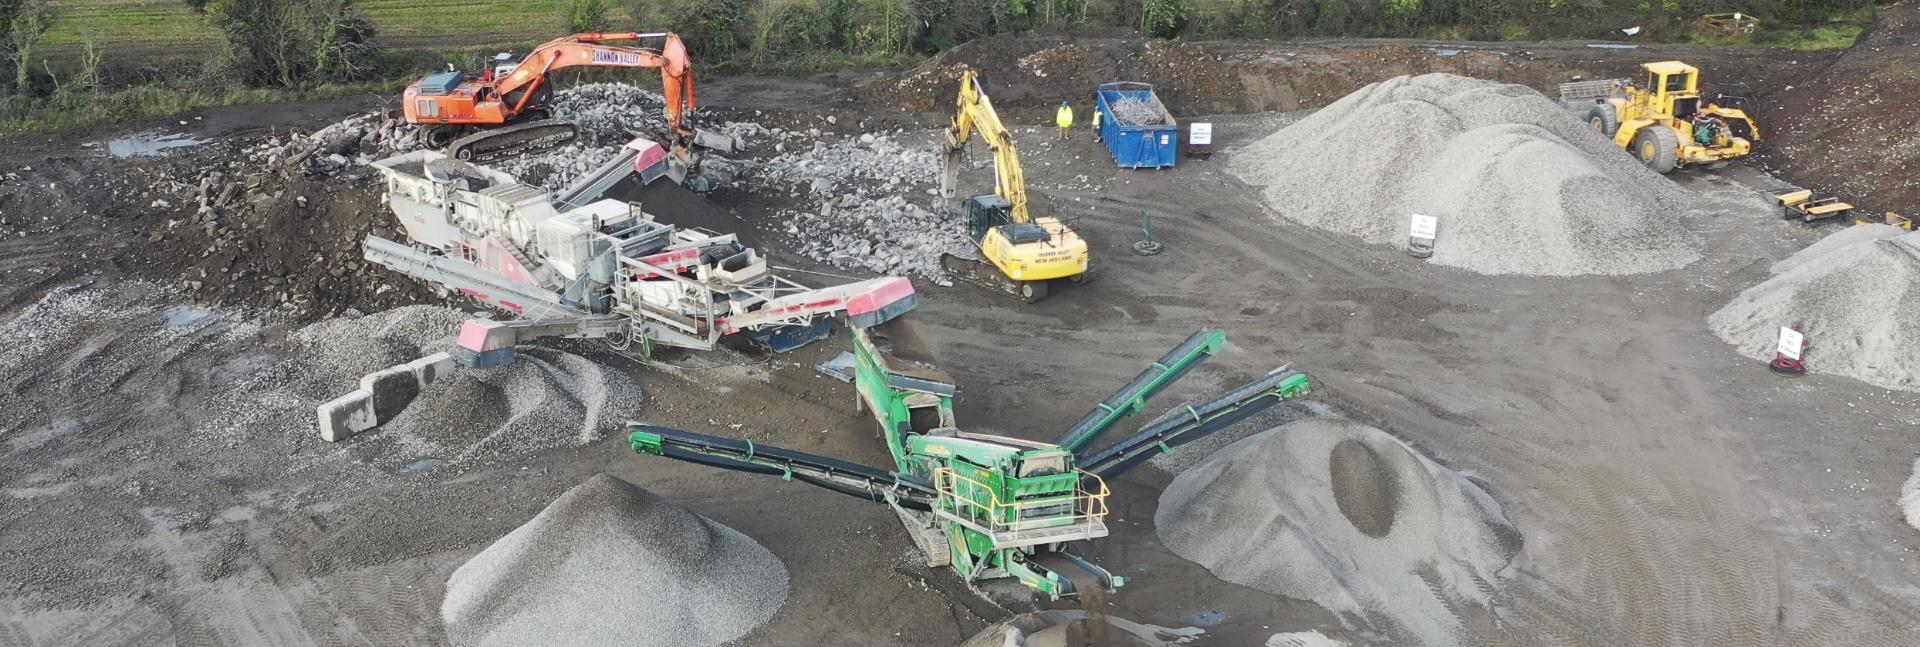 aerial shot of multiple machines working in a gravel pit